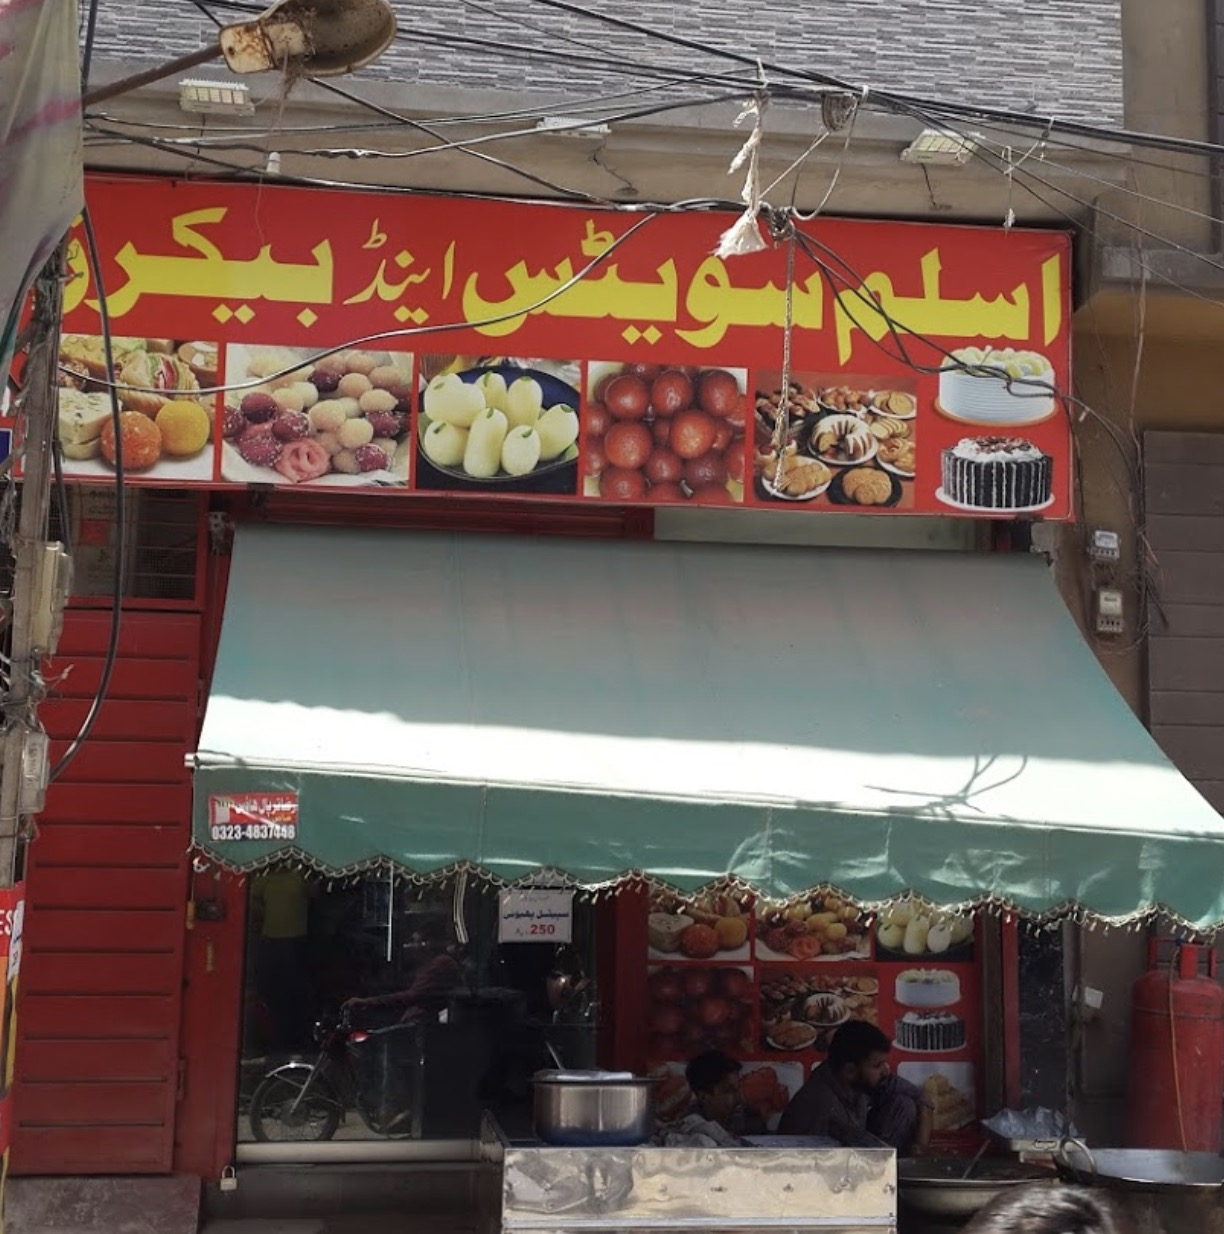 Aslam sweets and bakery